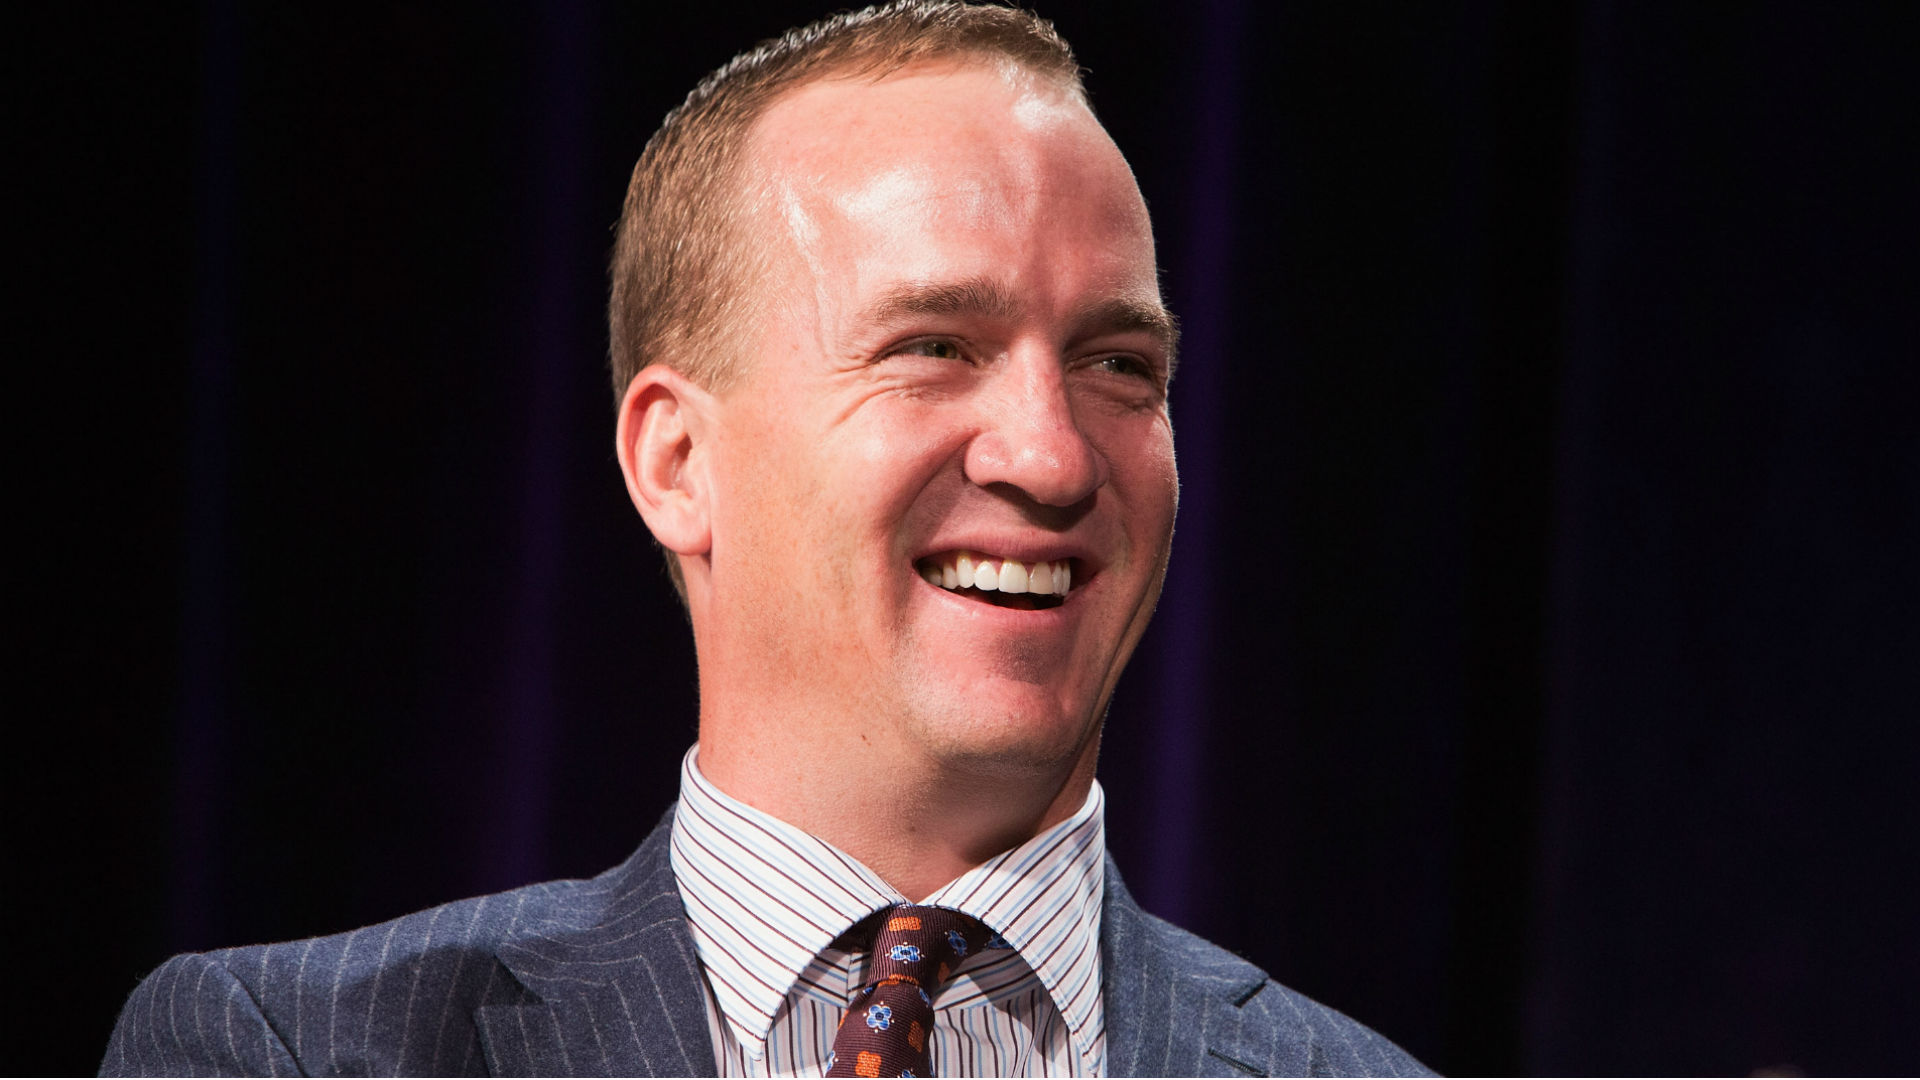 Peyton Manning donates $3 million to University of Tennessee